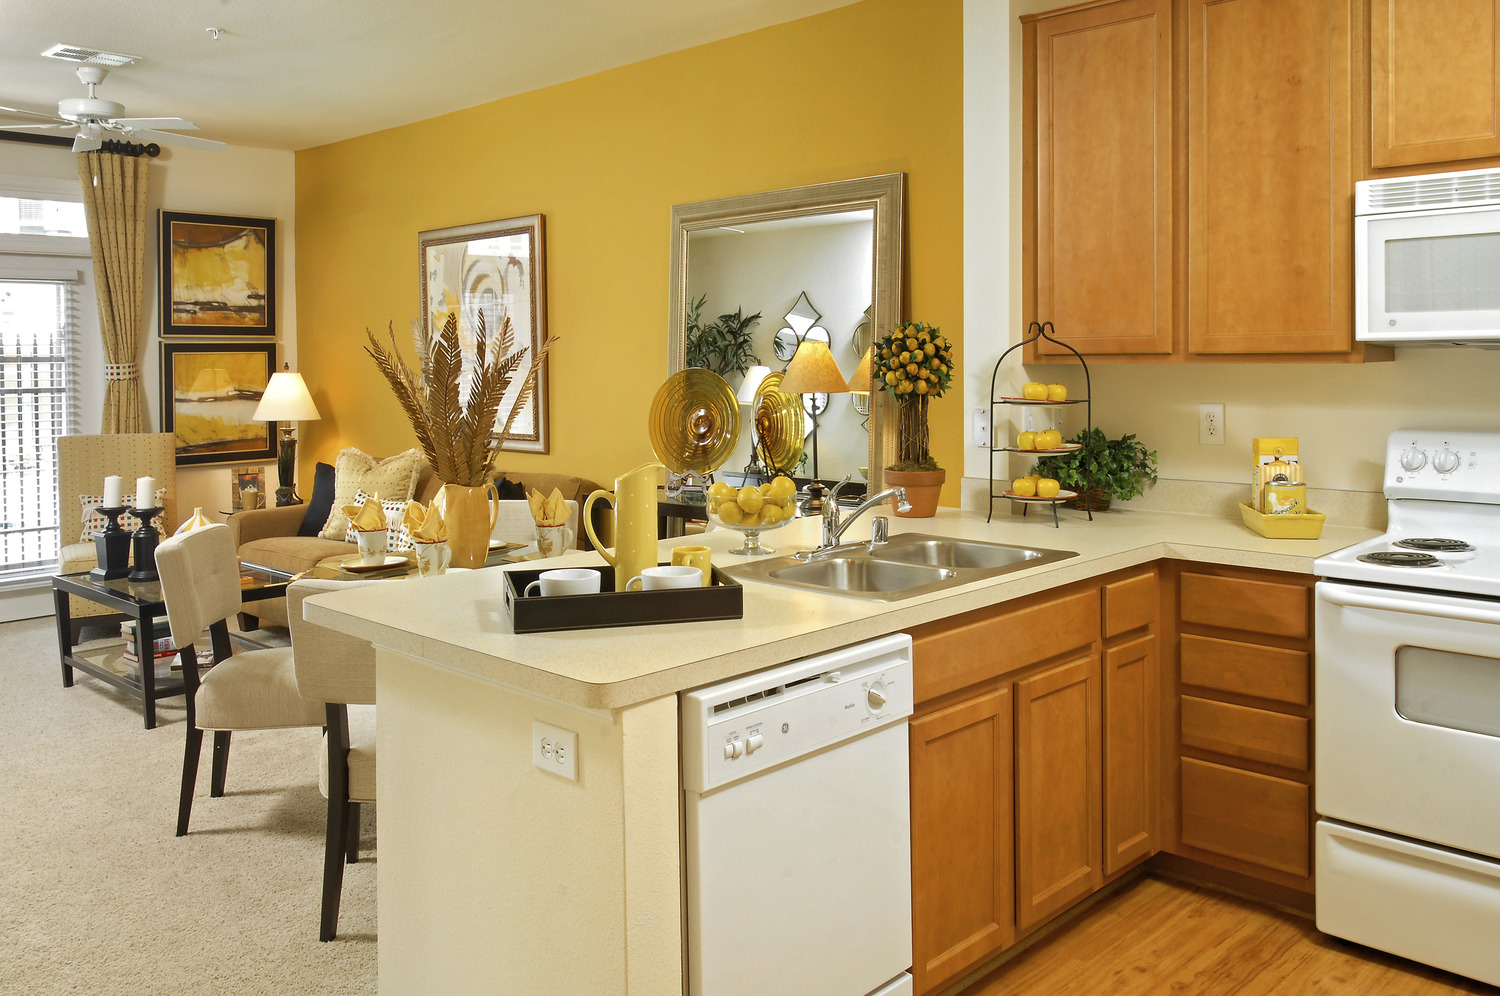 CBG builds Camden Monument Place, a 293 Class-A Homes with 75 Upgraded Homes in Fairfax, VA - Image #9